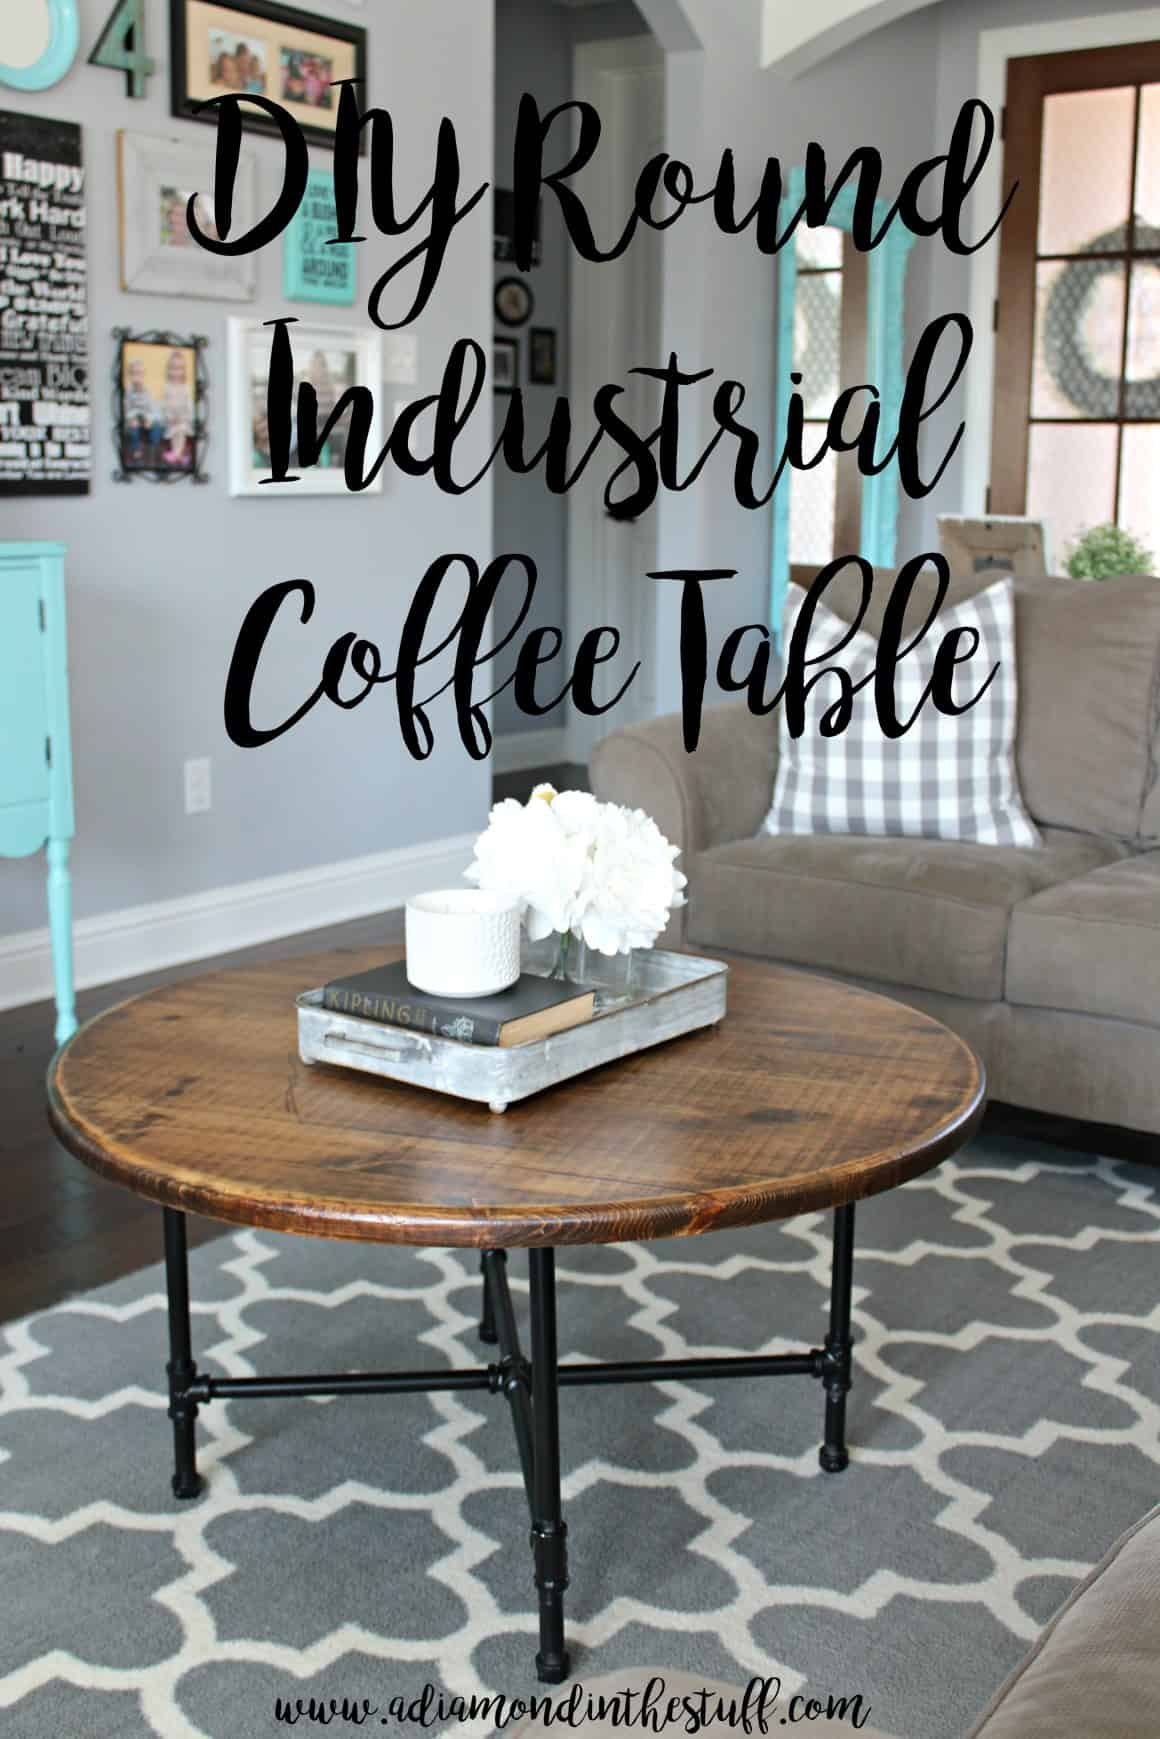 Rounded industrial coffee table